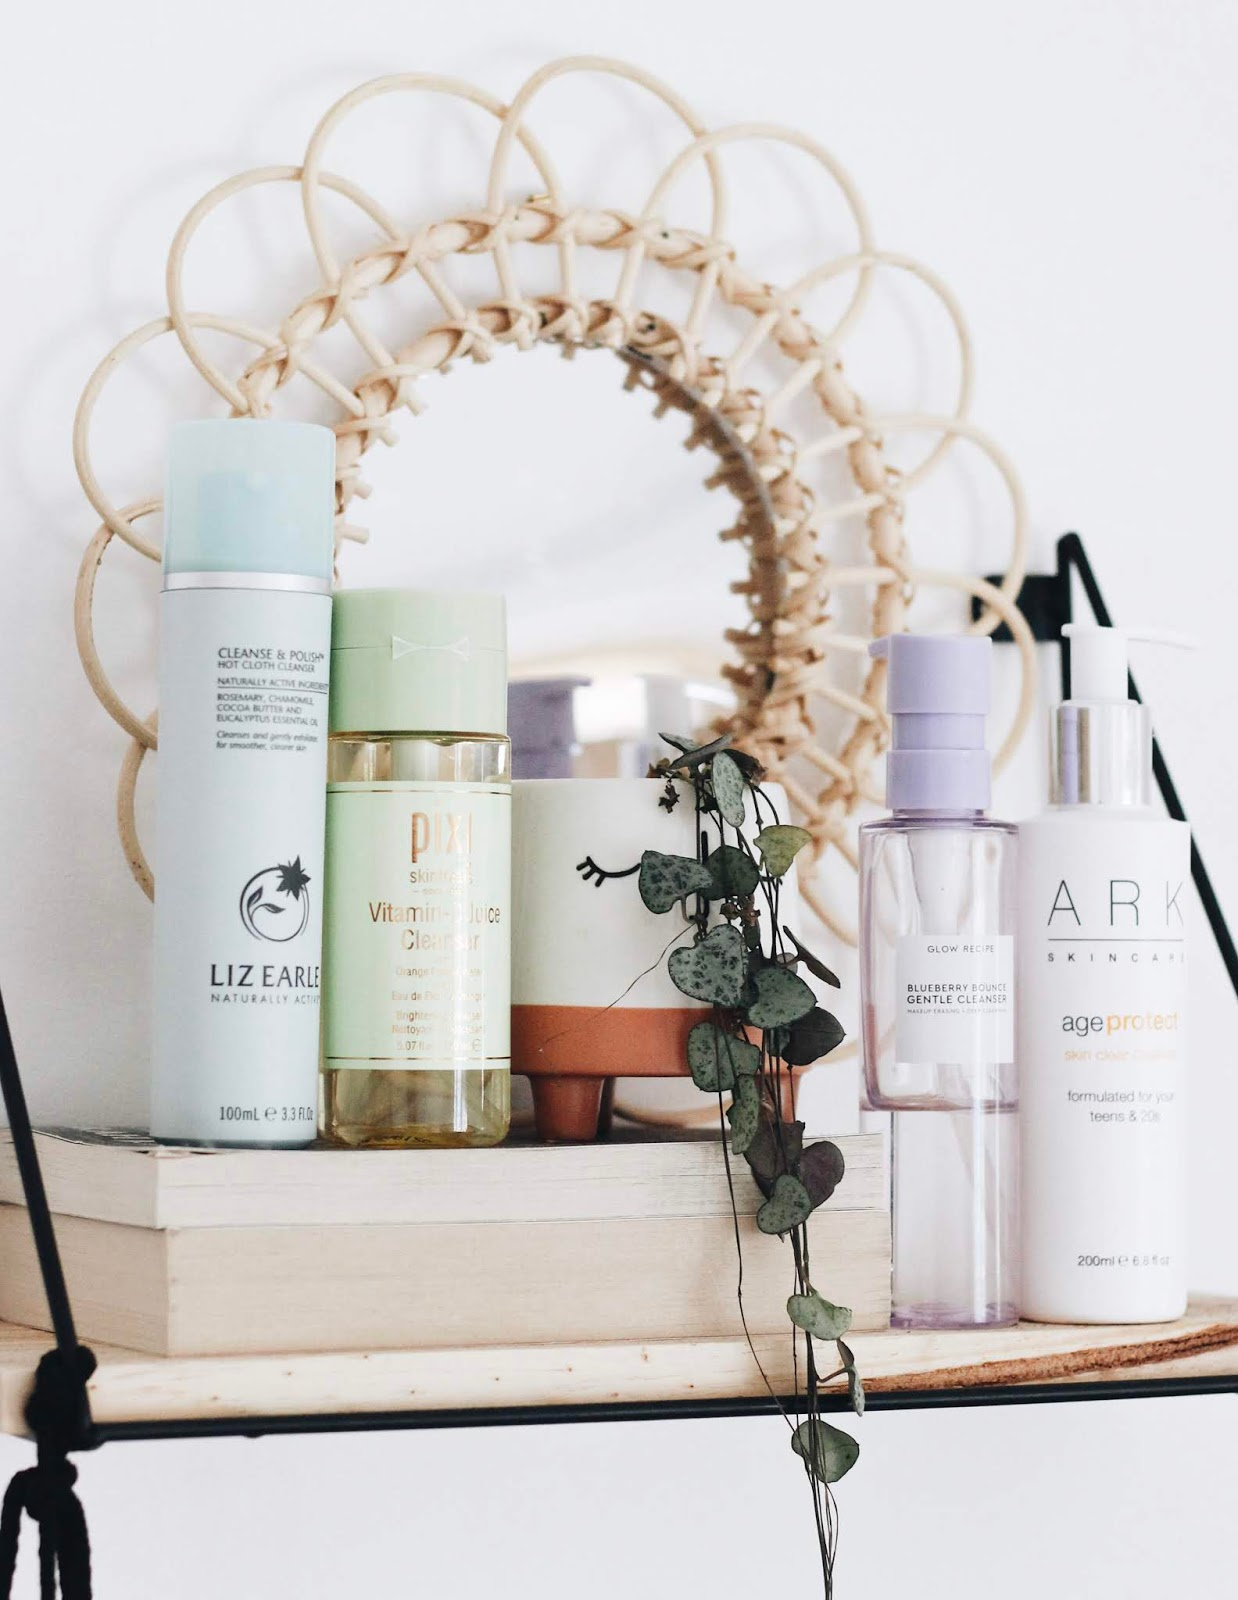 Liz Earle Cleanse and Polish, Pixi Vitamin C Cleanser, Ark Skincare, Glow Recipe